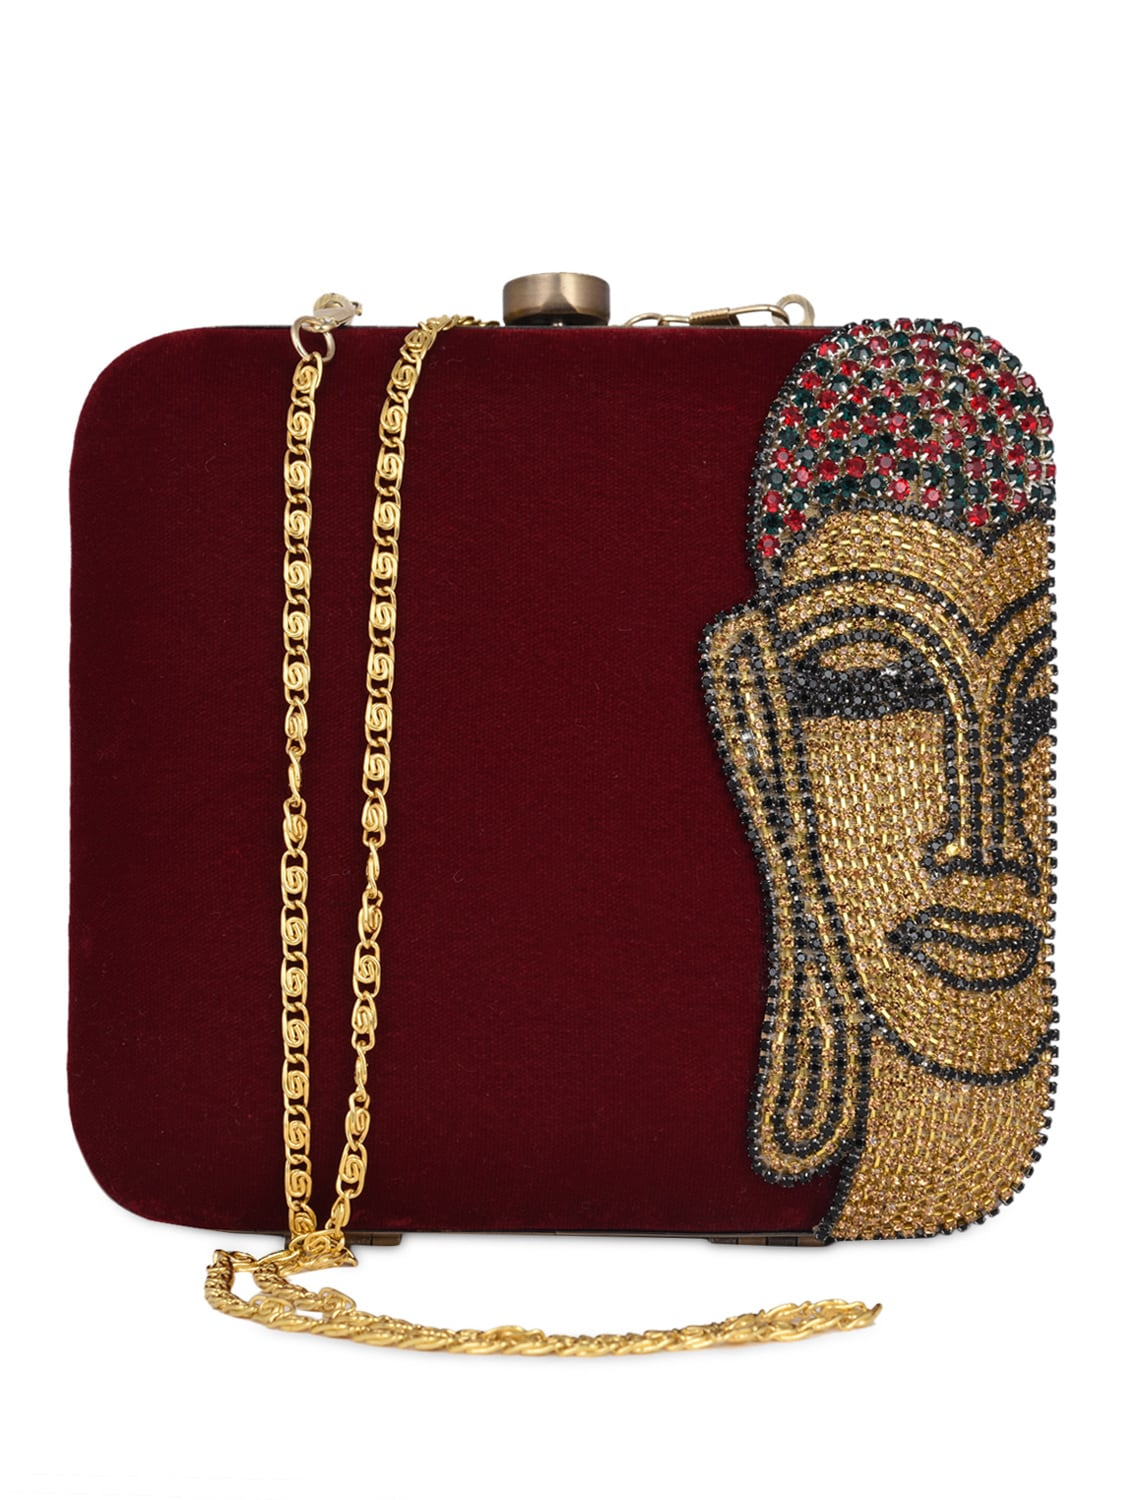 de5911d27a86 Buy Beaded Buddha Embellished Velvet Clutch Bag for Women from Uptown for  ₹1527 at 67% off